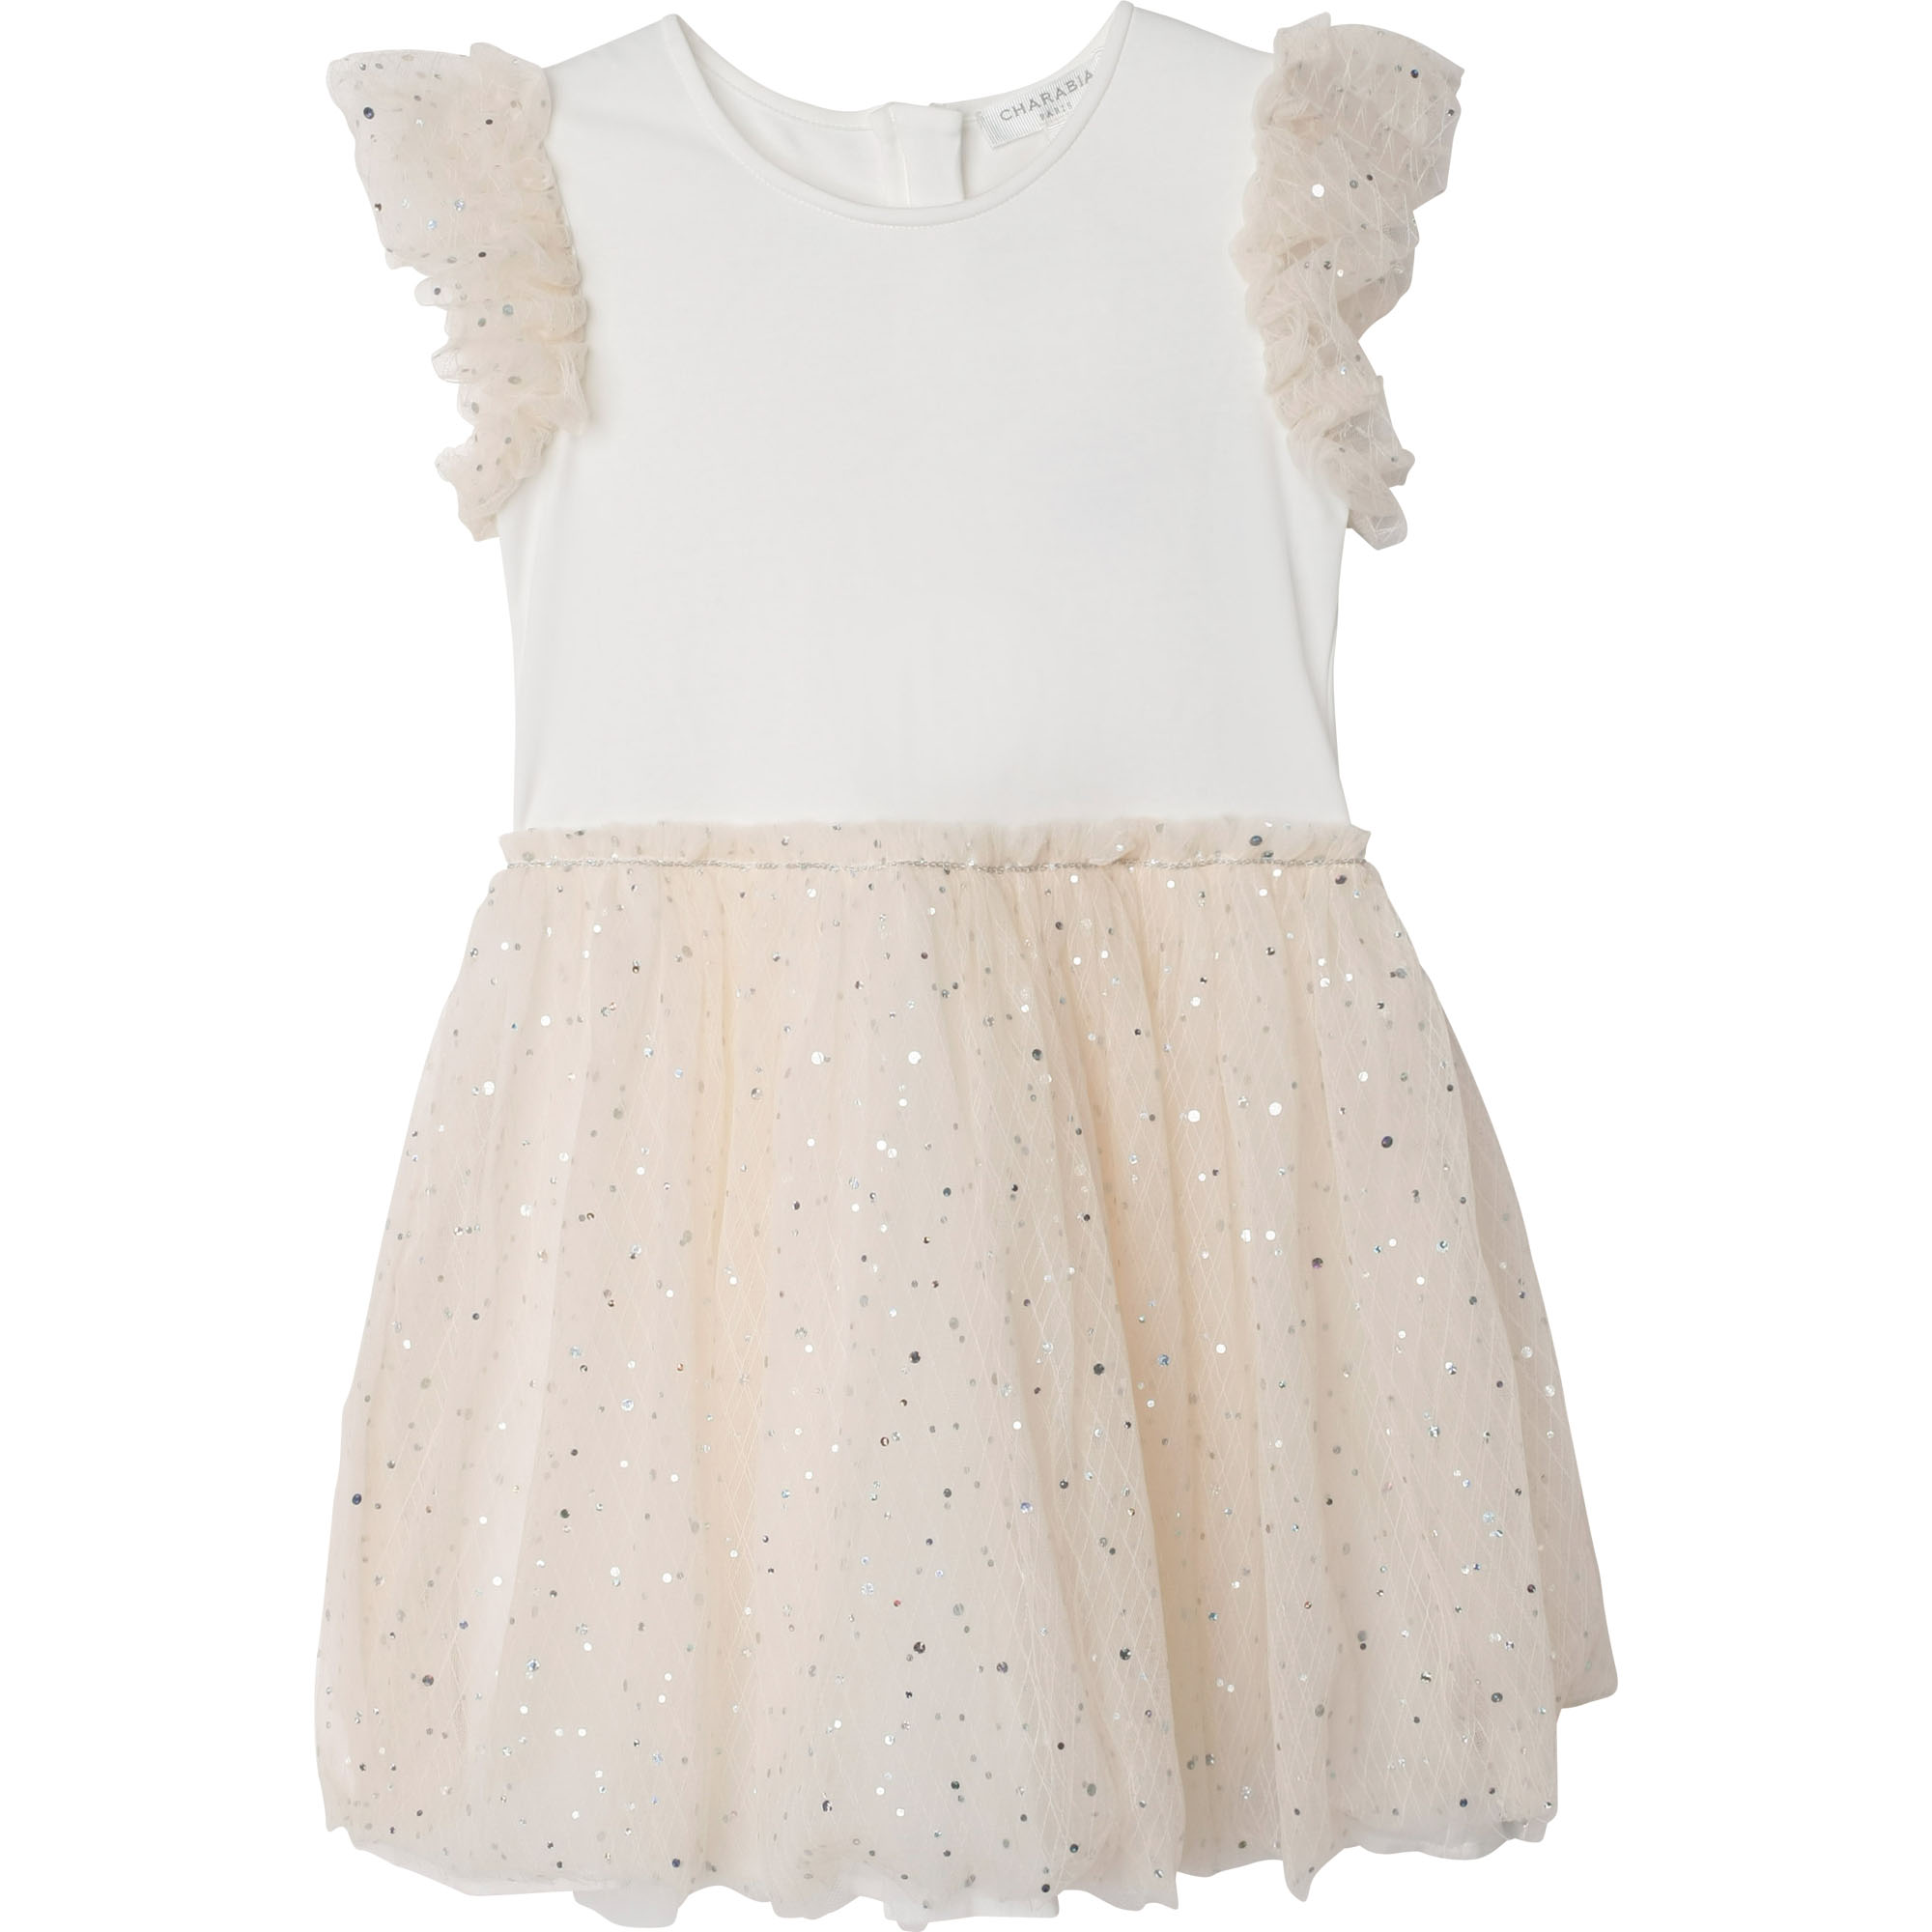 Formal sequin dress CHARABIA for GIRL